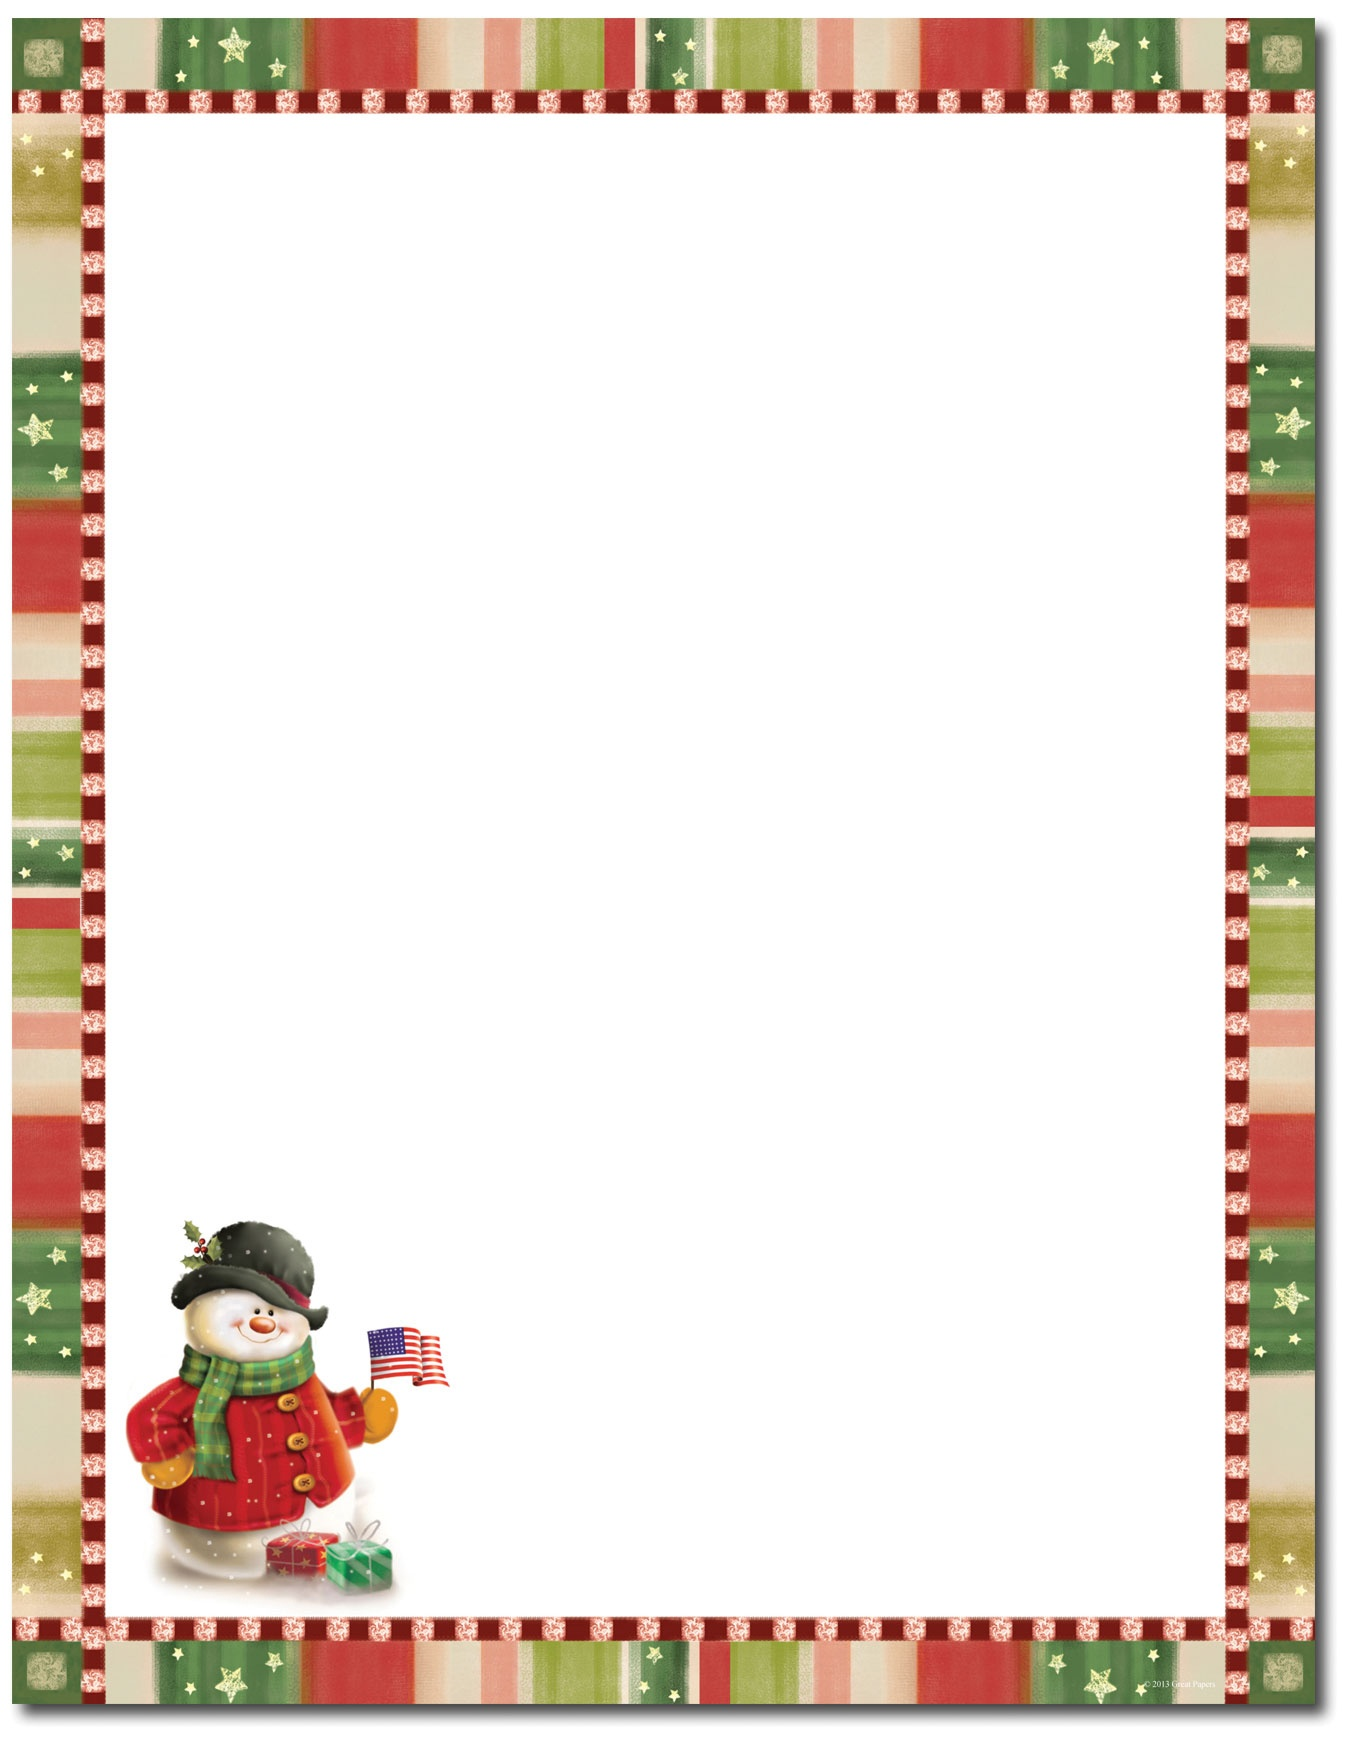 christmas stationery download.